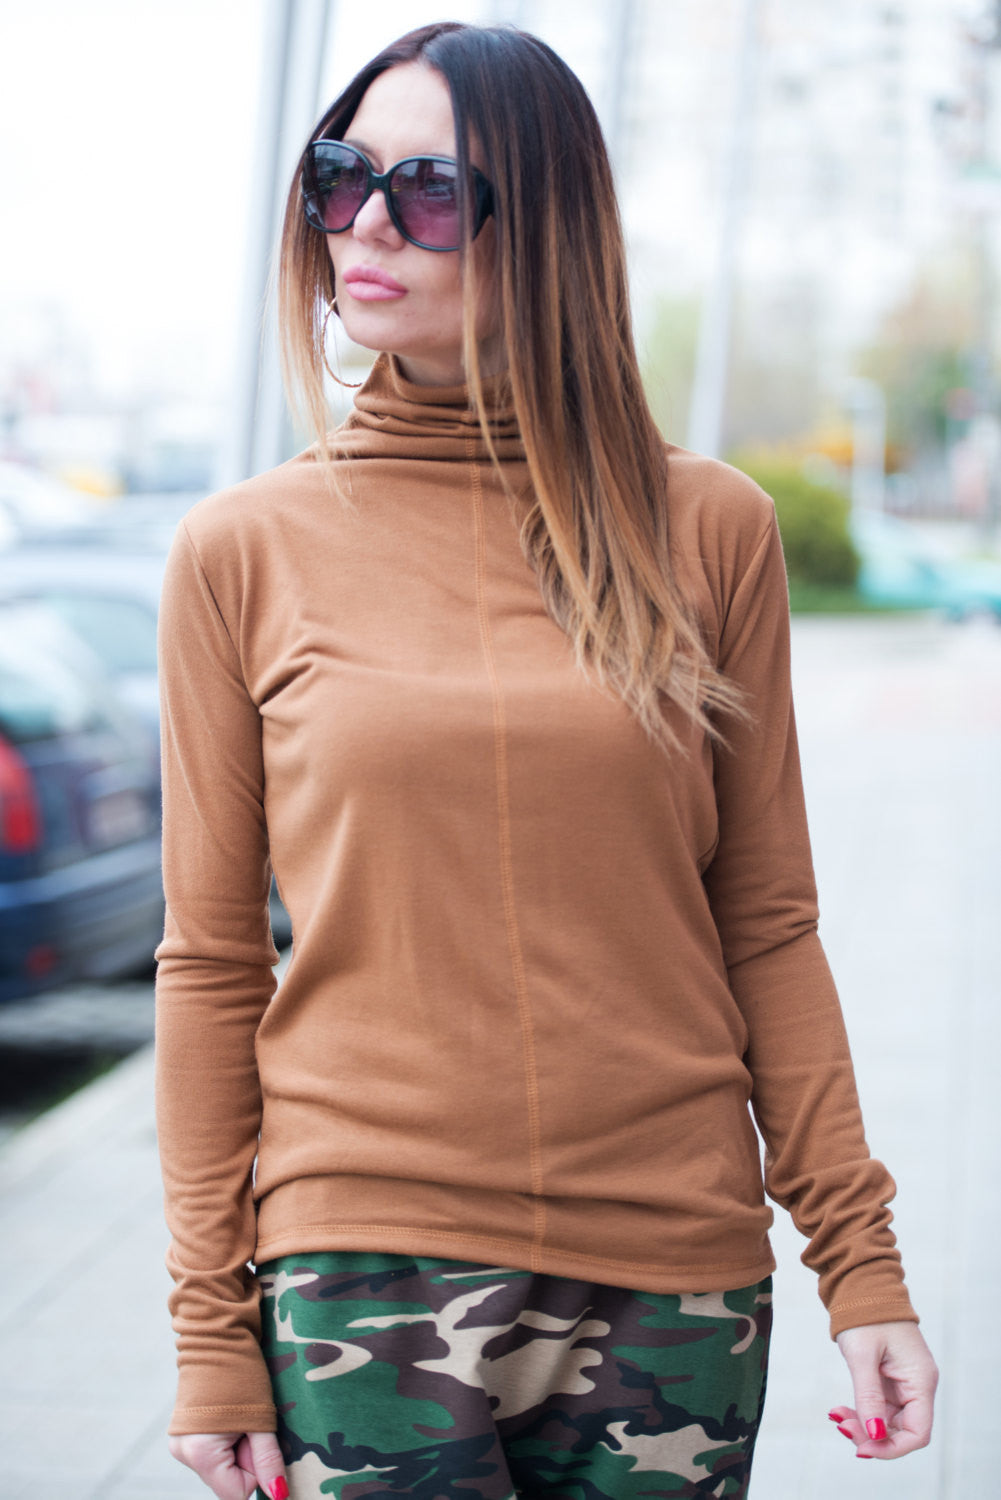 Woman Brown Cotton Knitting Turtleneck Blouse, Turtleneck Top with long sleeves